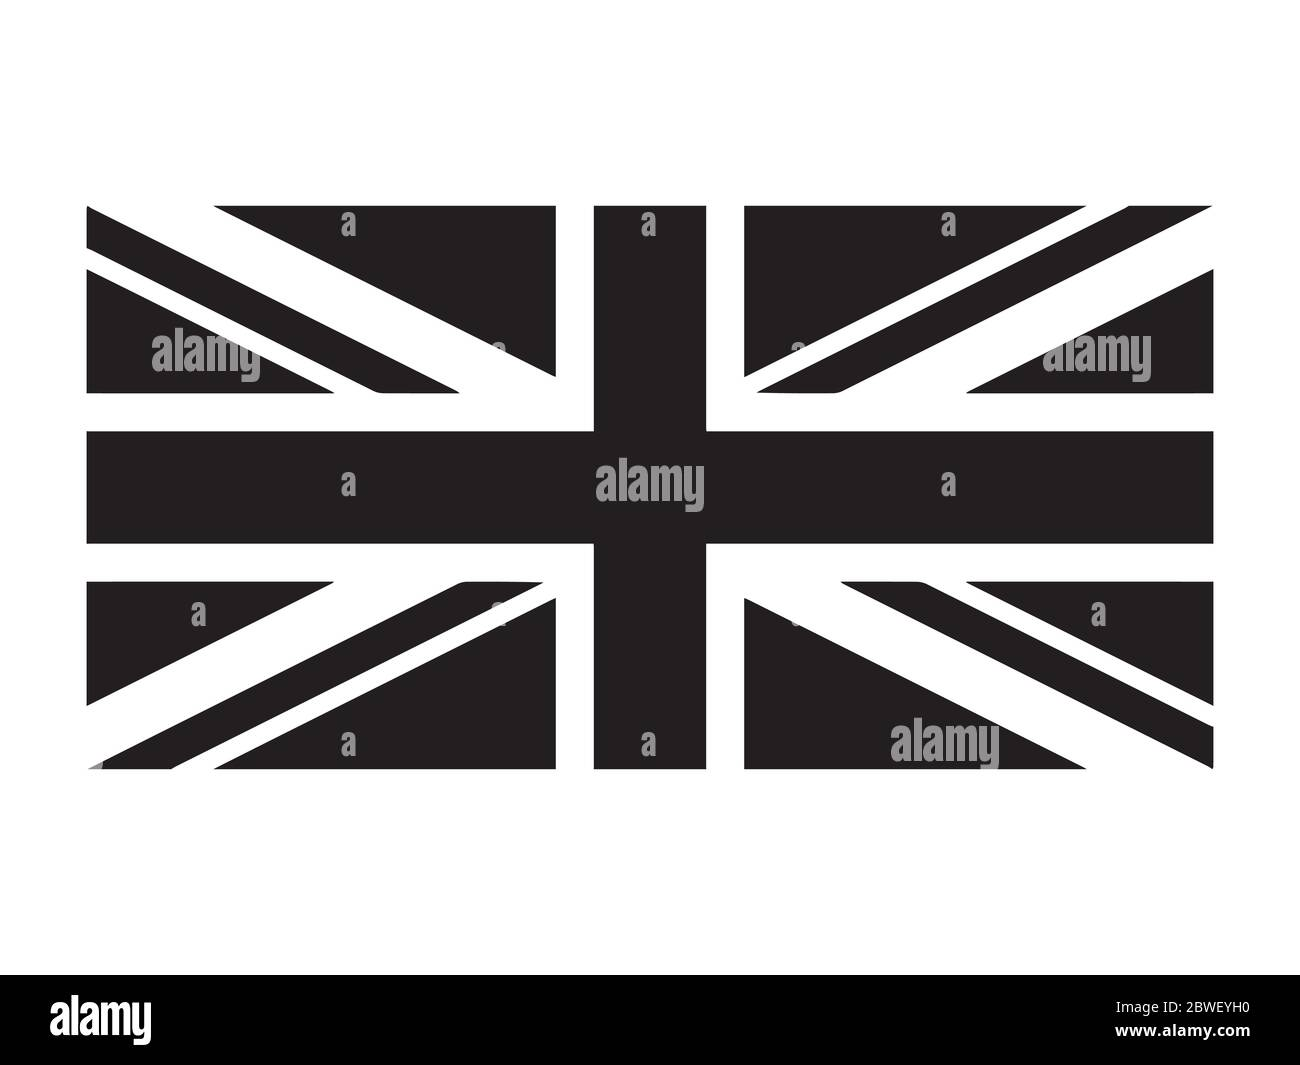 united kingdom flag union jack. uk flag black and white. country national  emblem banner. monochrome grayscale eps vector file stock vector image &  art - alamy  alamy